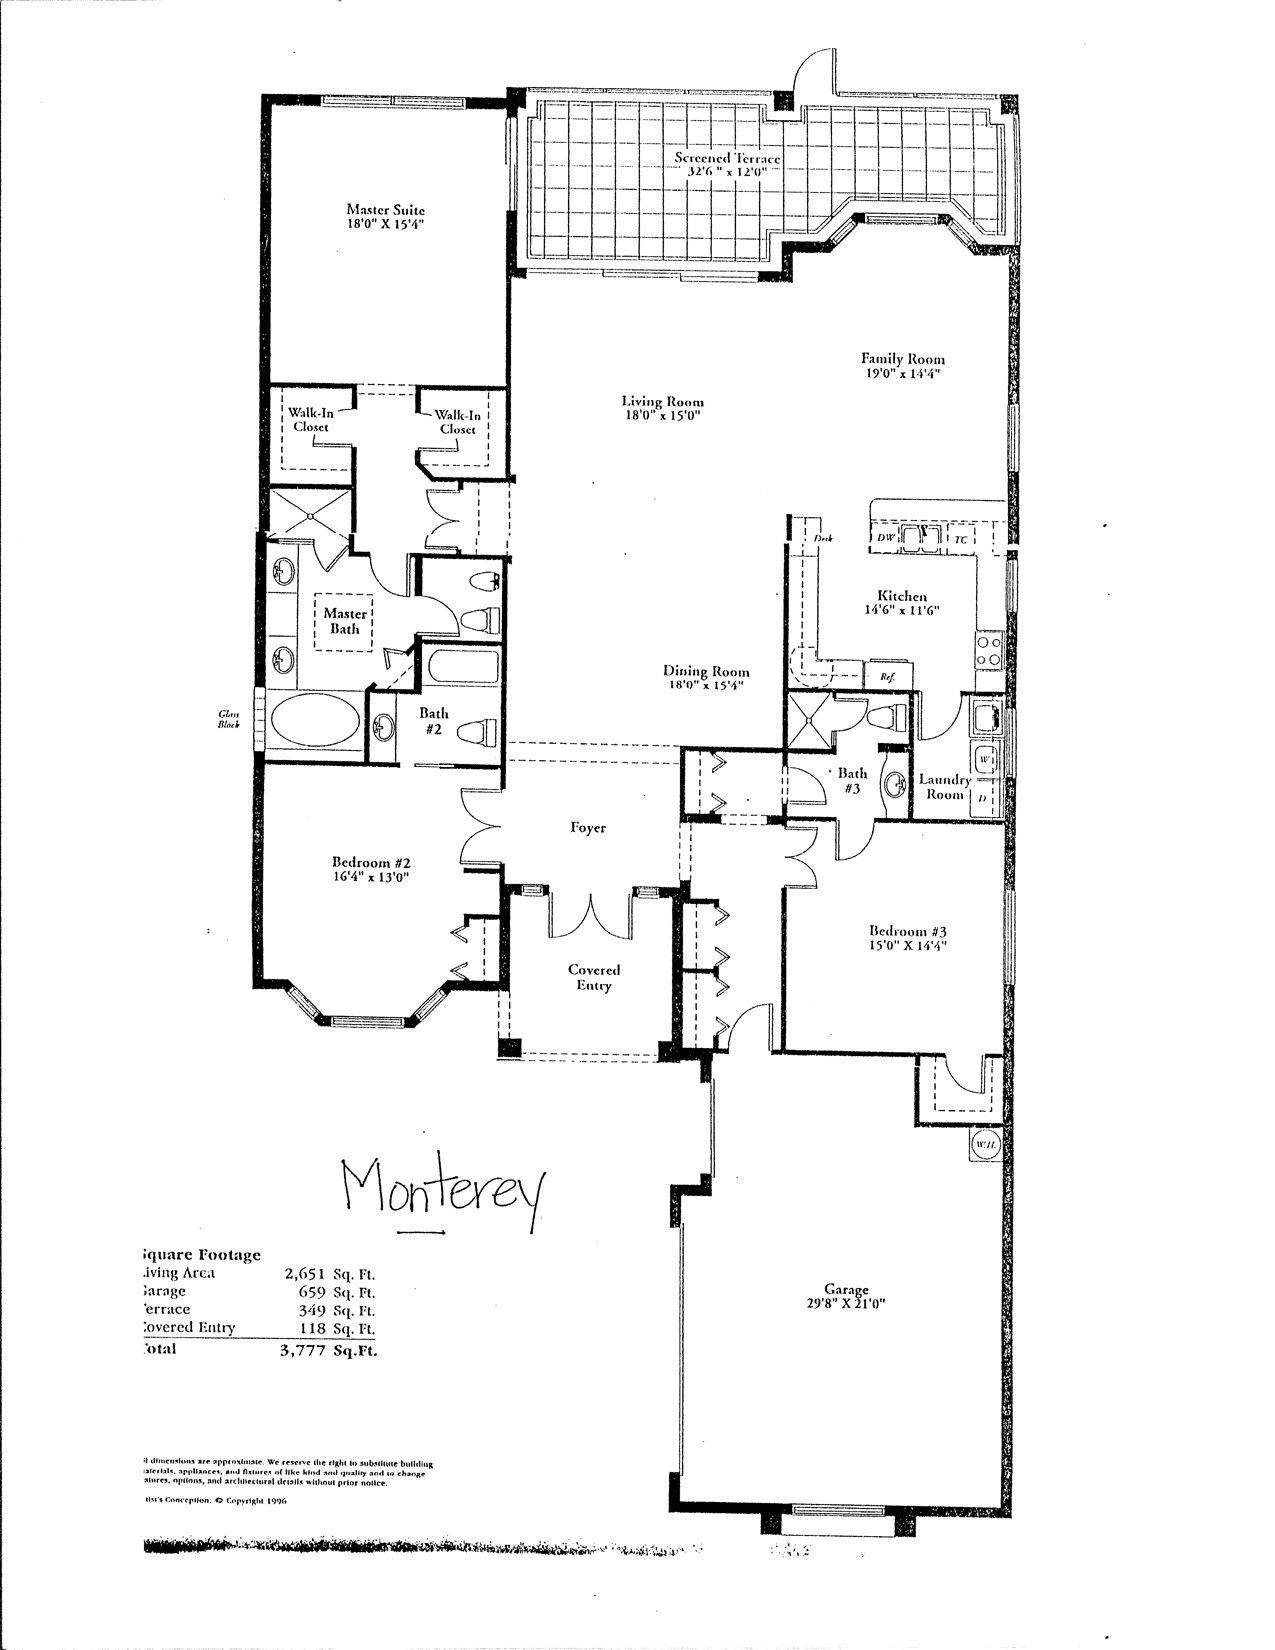 house plans with safe rooms along with 20 awesome house plans with safe room of house plans with safe rooms